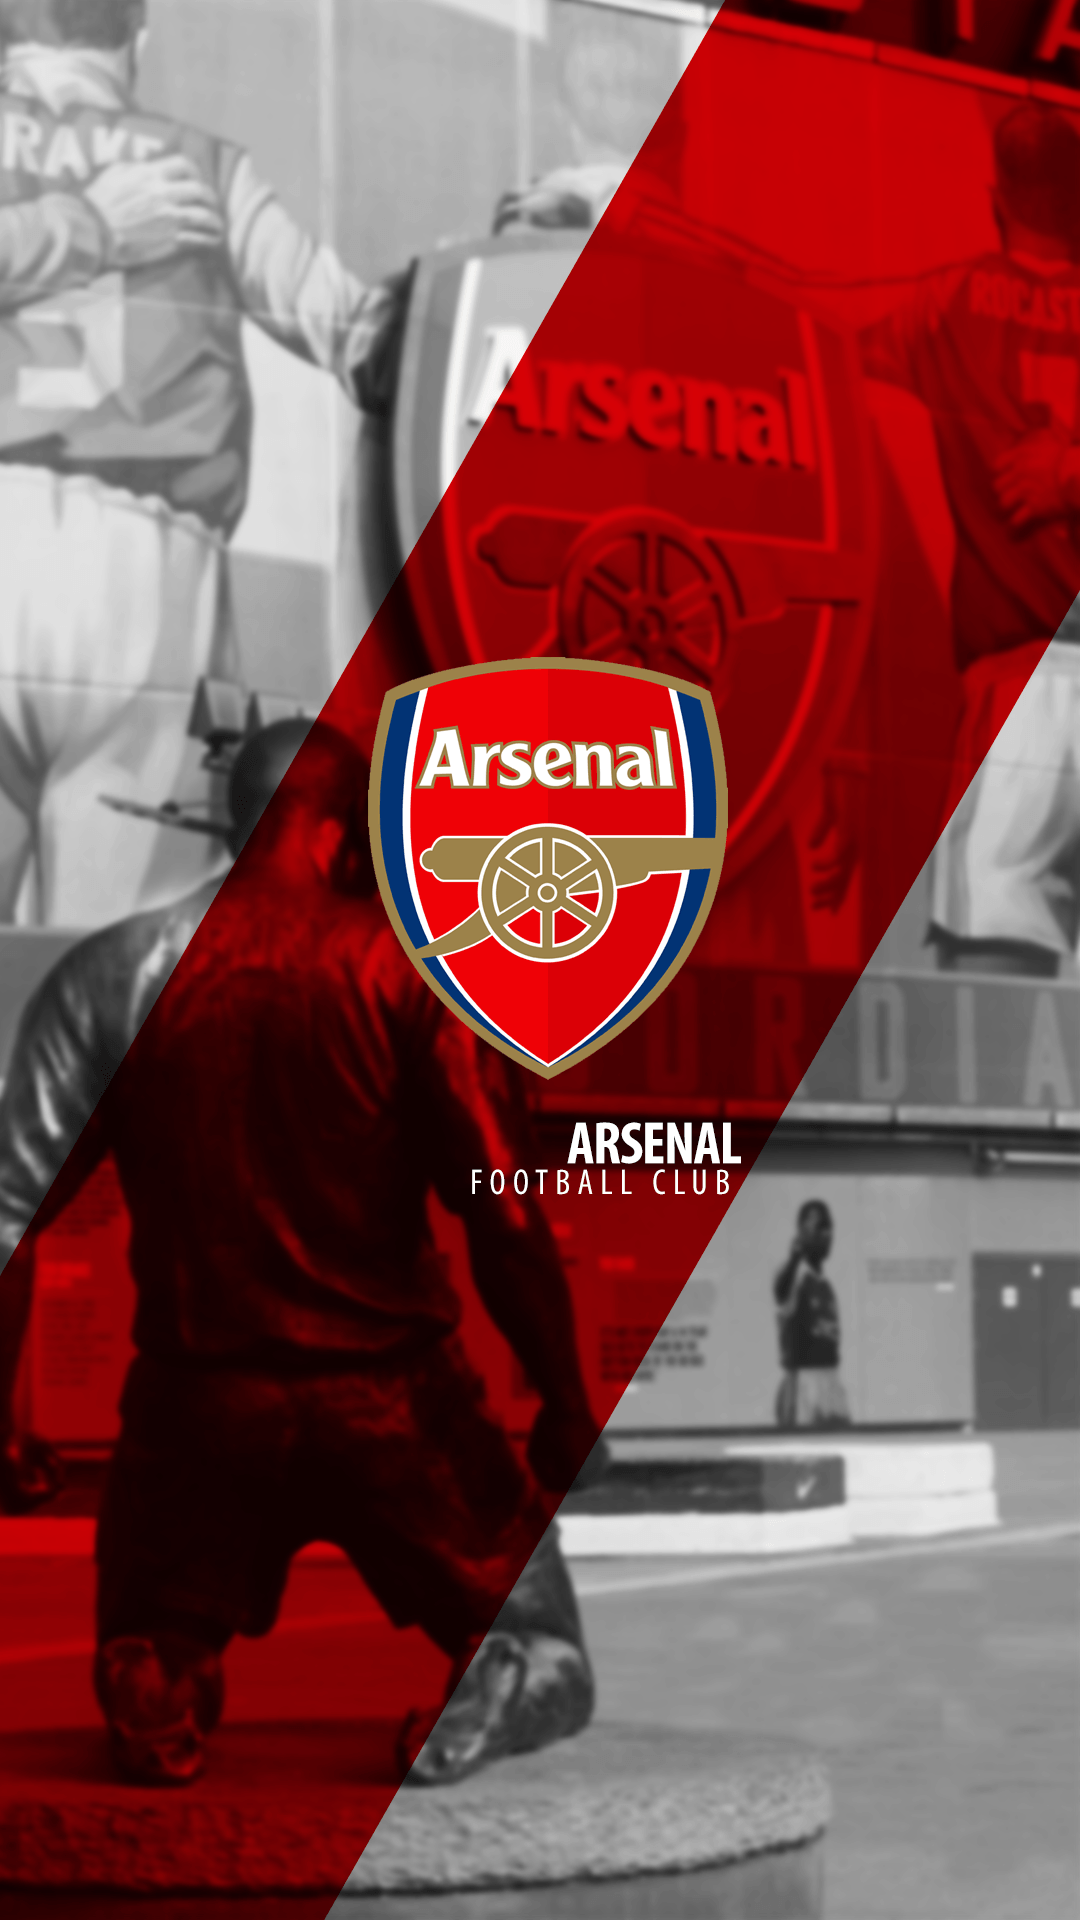 Arsenal 2018 Wallpapers Wallpaper Cave